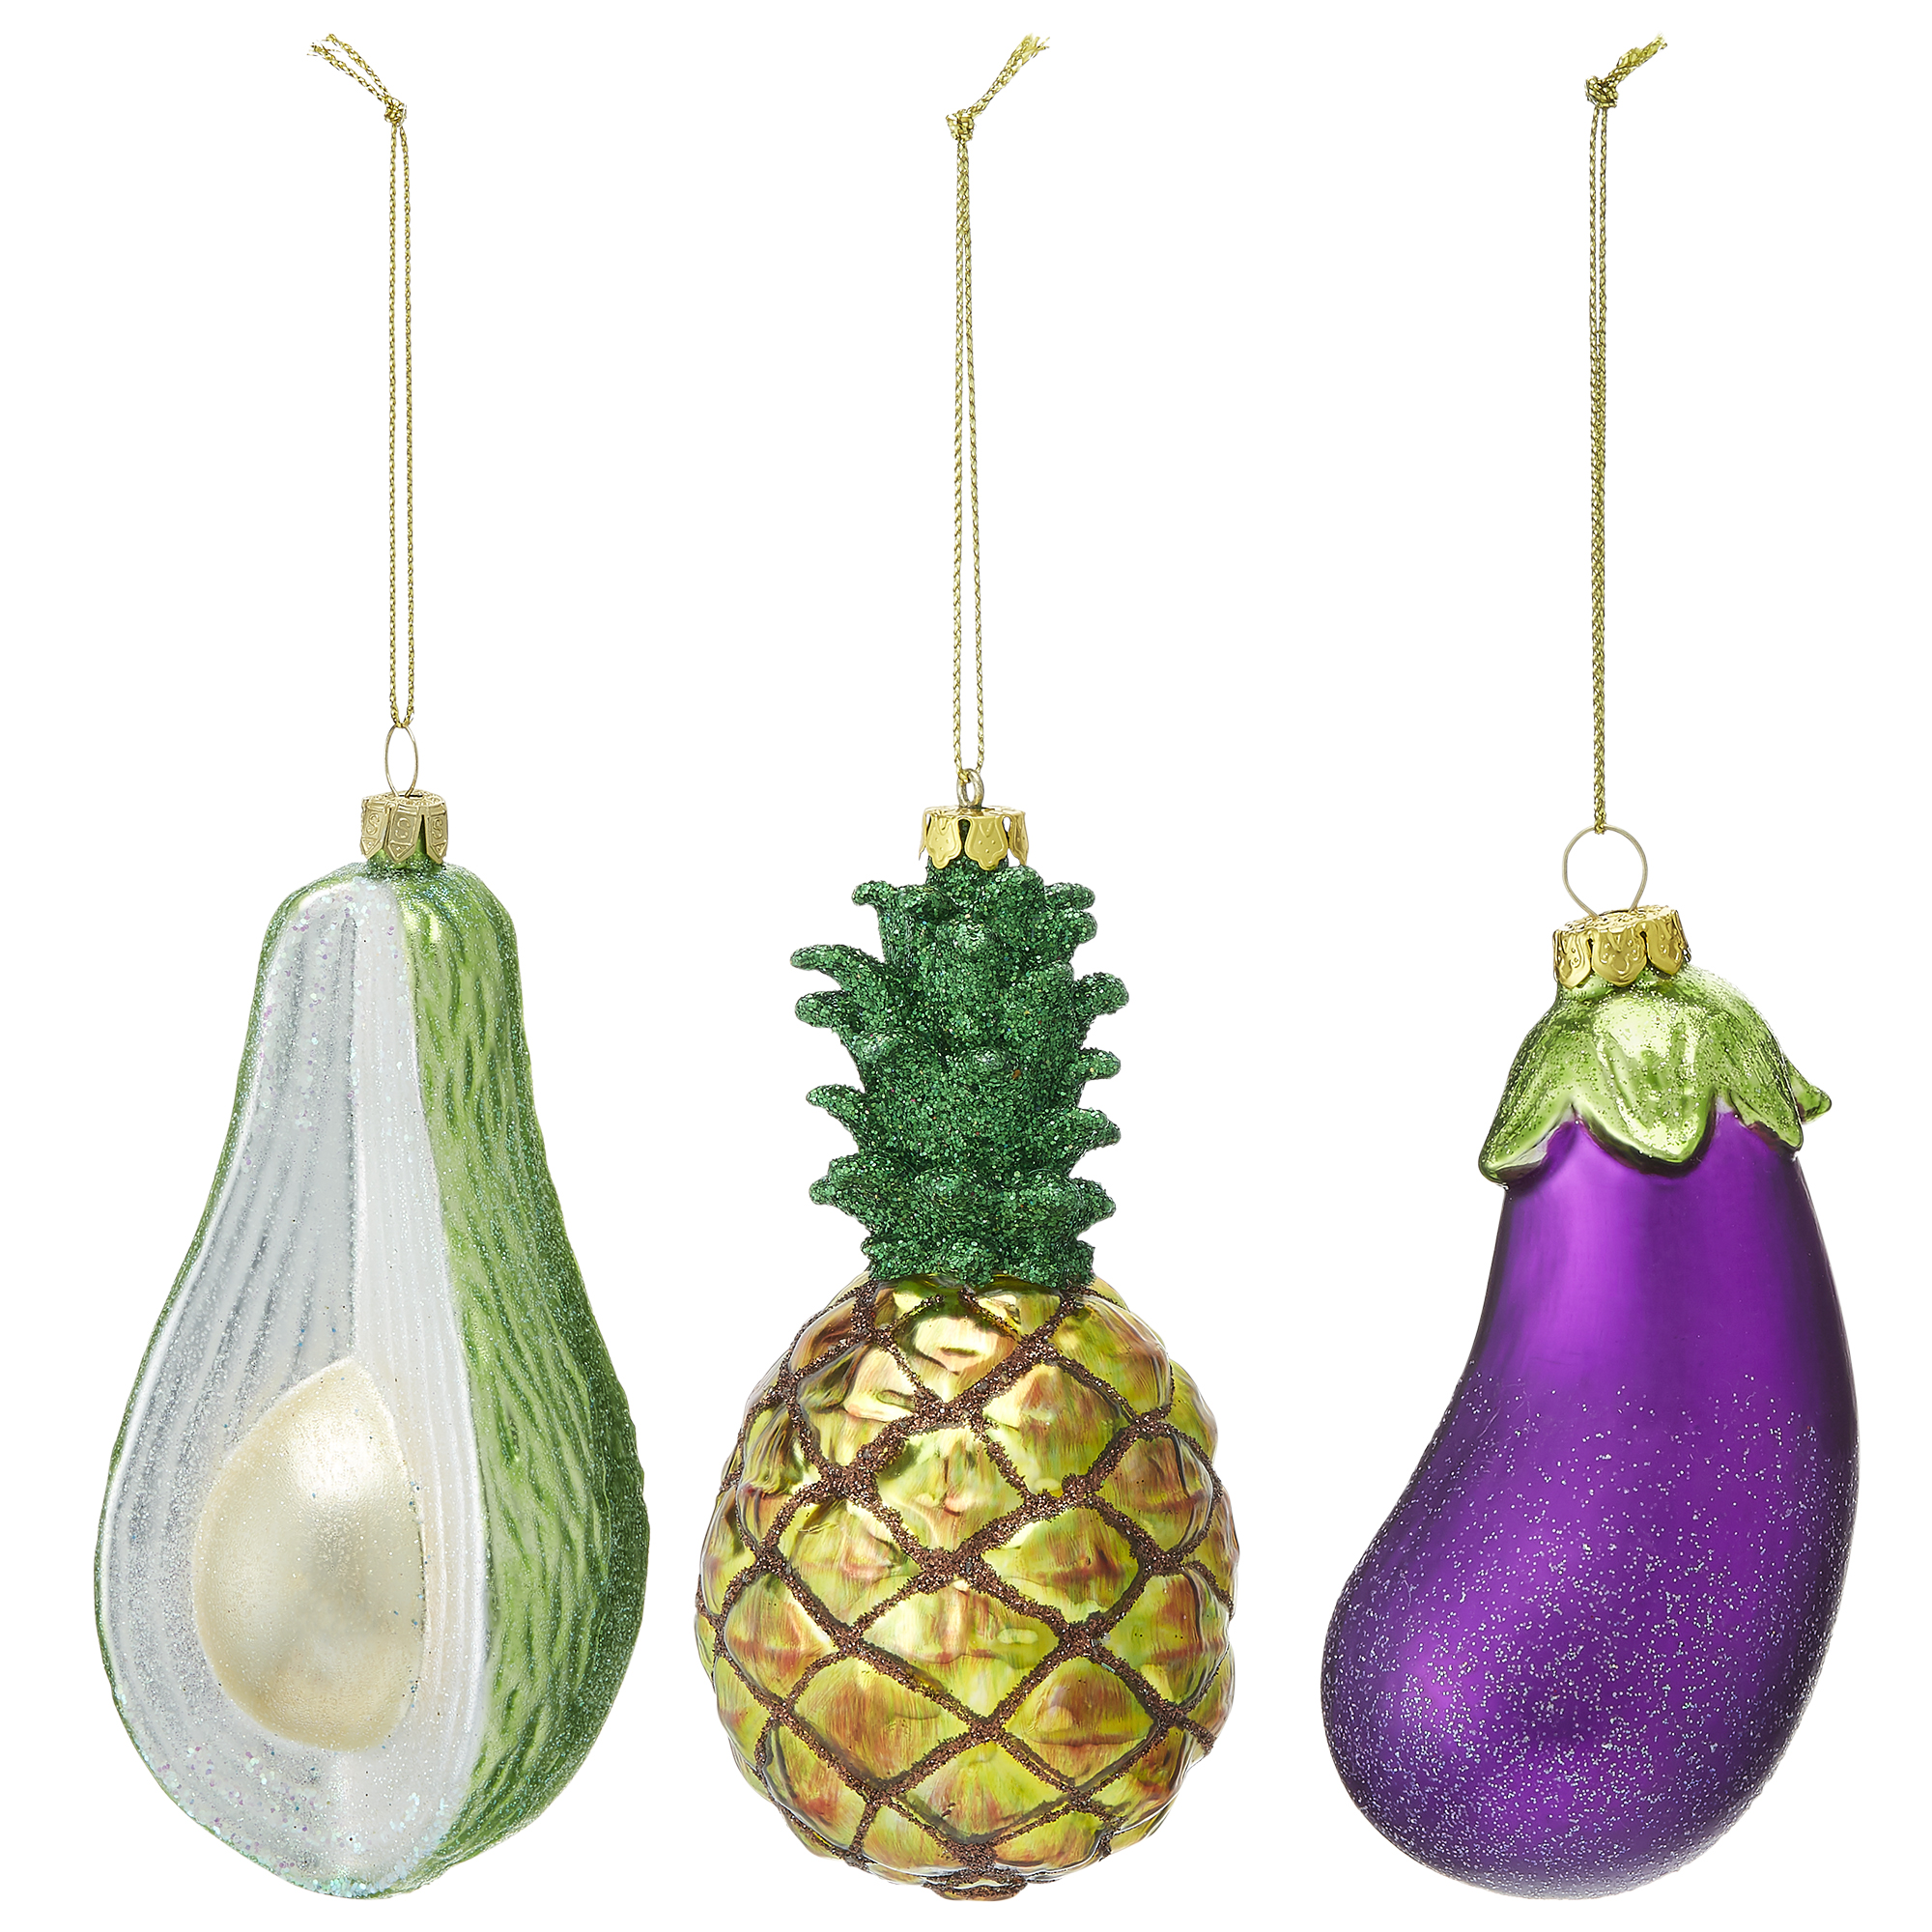 Selection of paper chase baubles. There is an avocado, pineapple and aubergine bauble